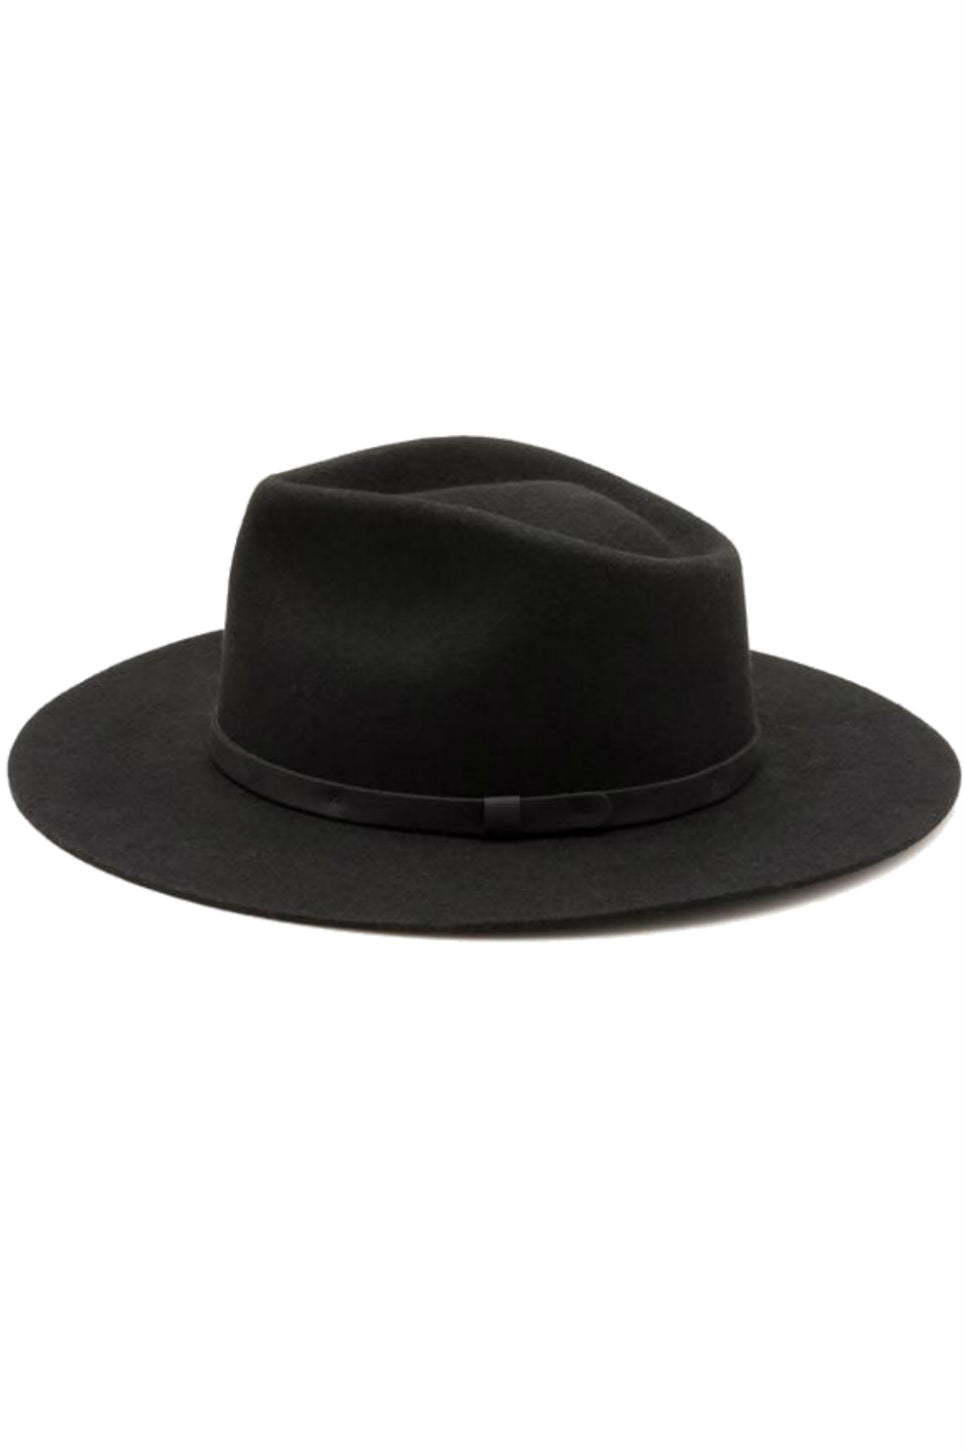 Yellow 108 - Dylan Hat - Black - Side